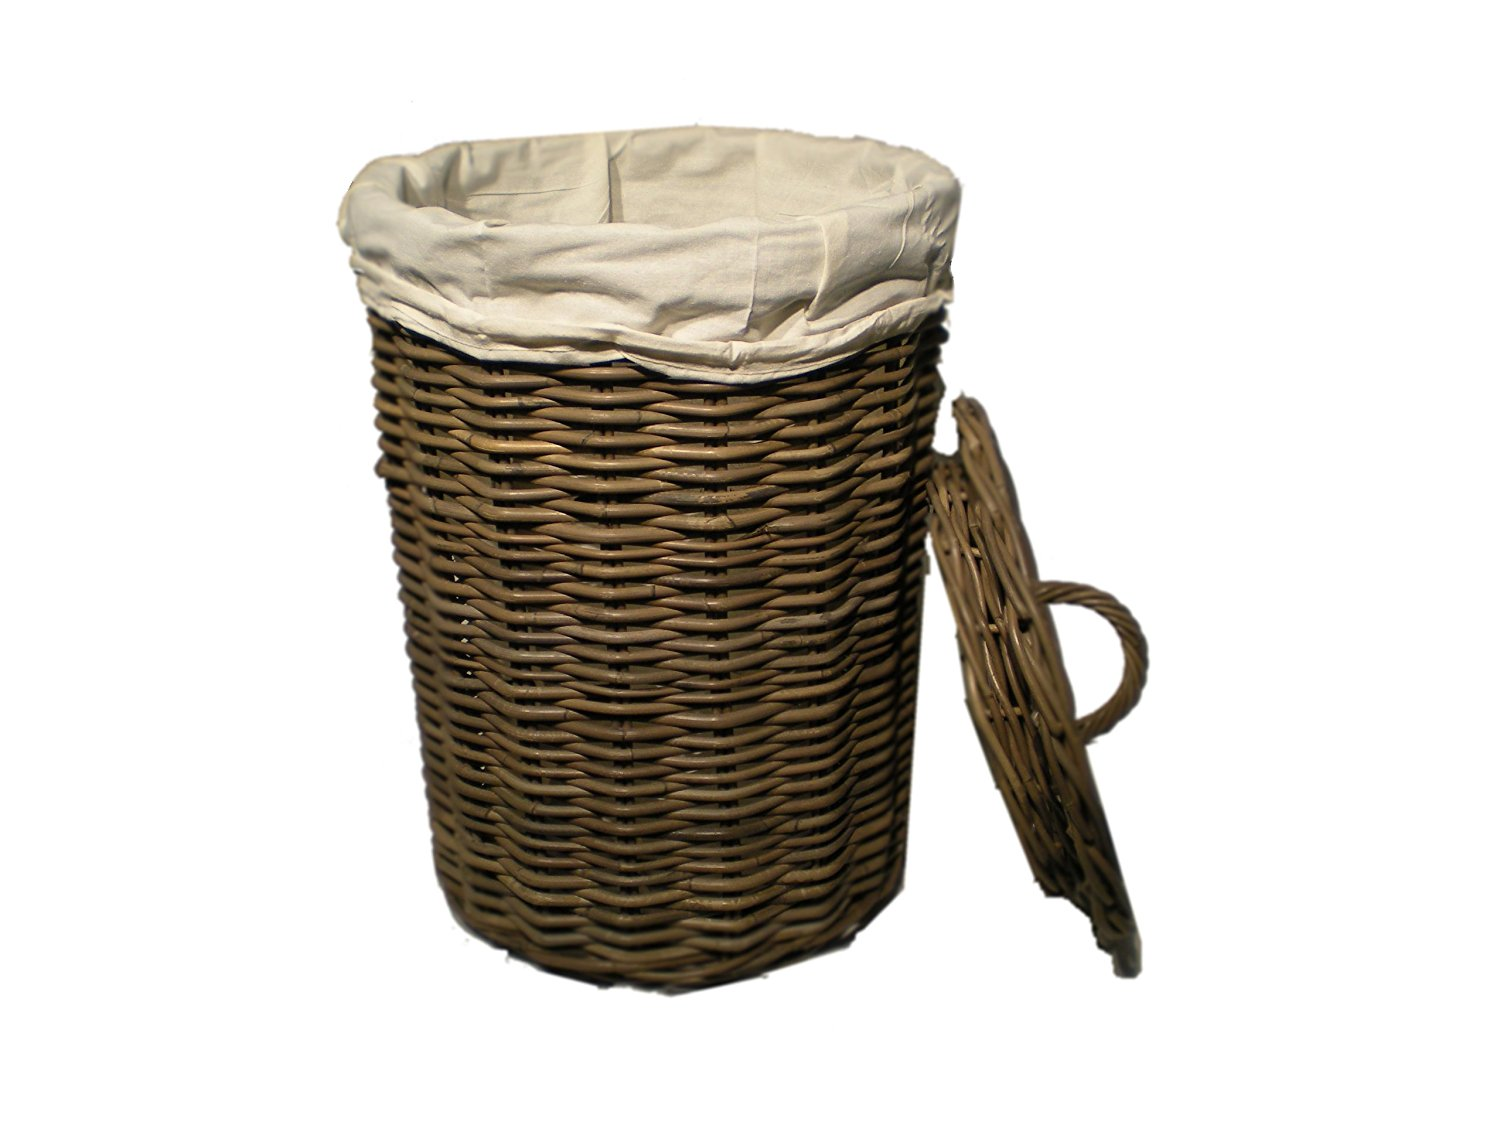 W535 Laundry Basket